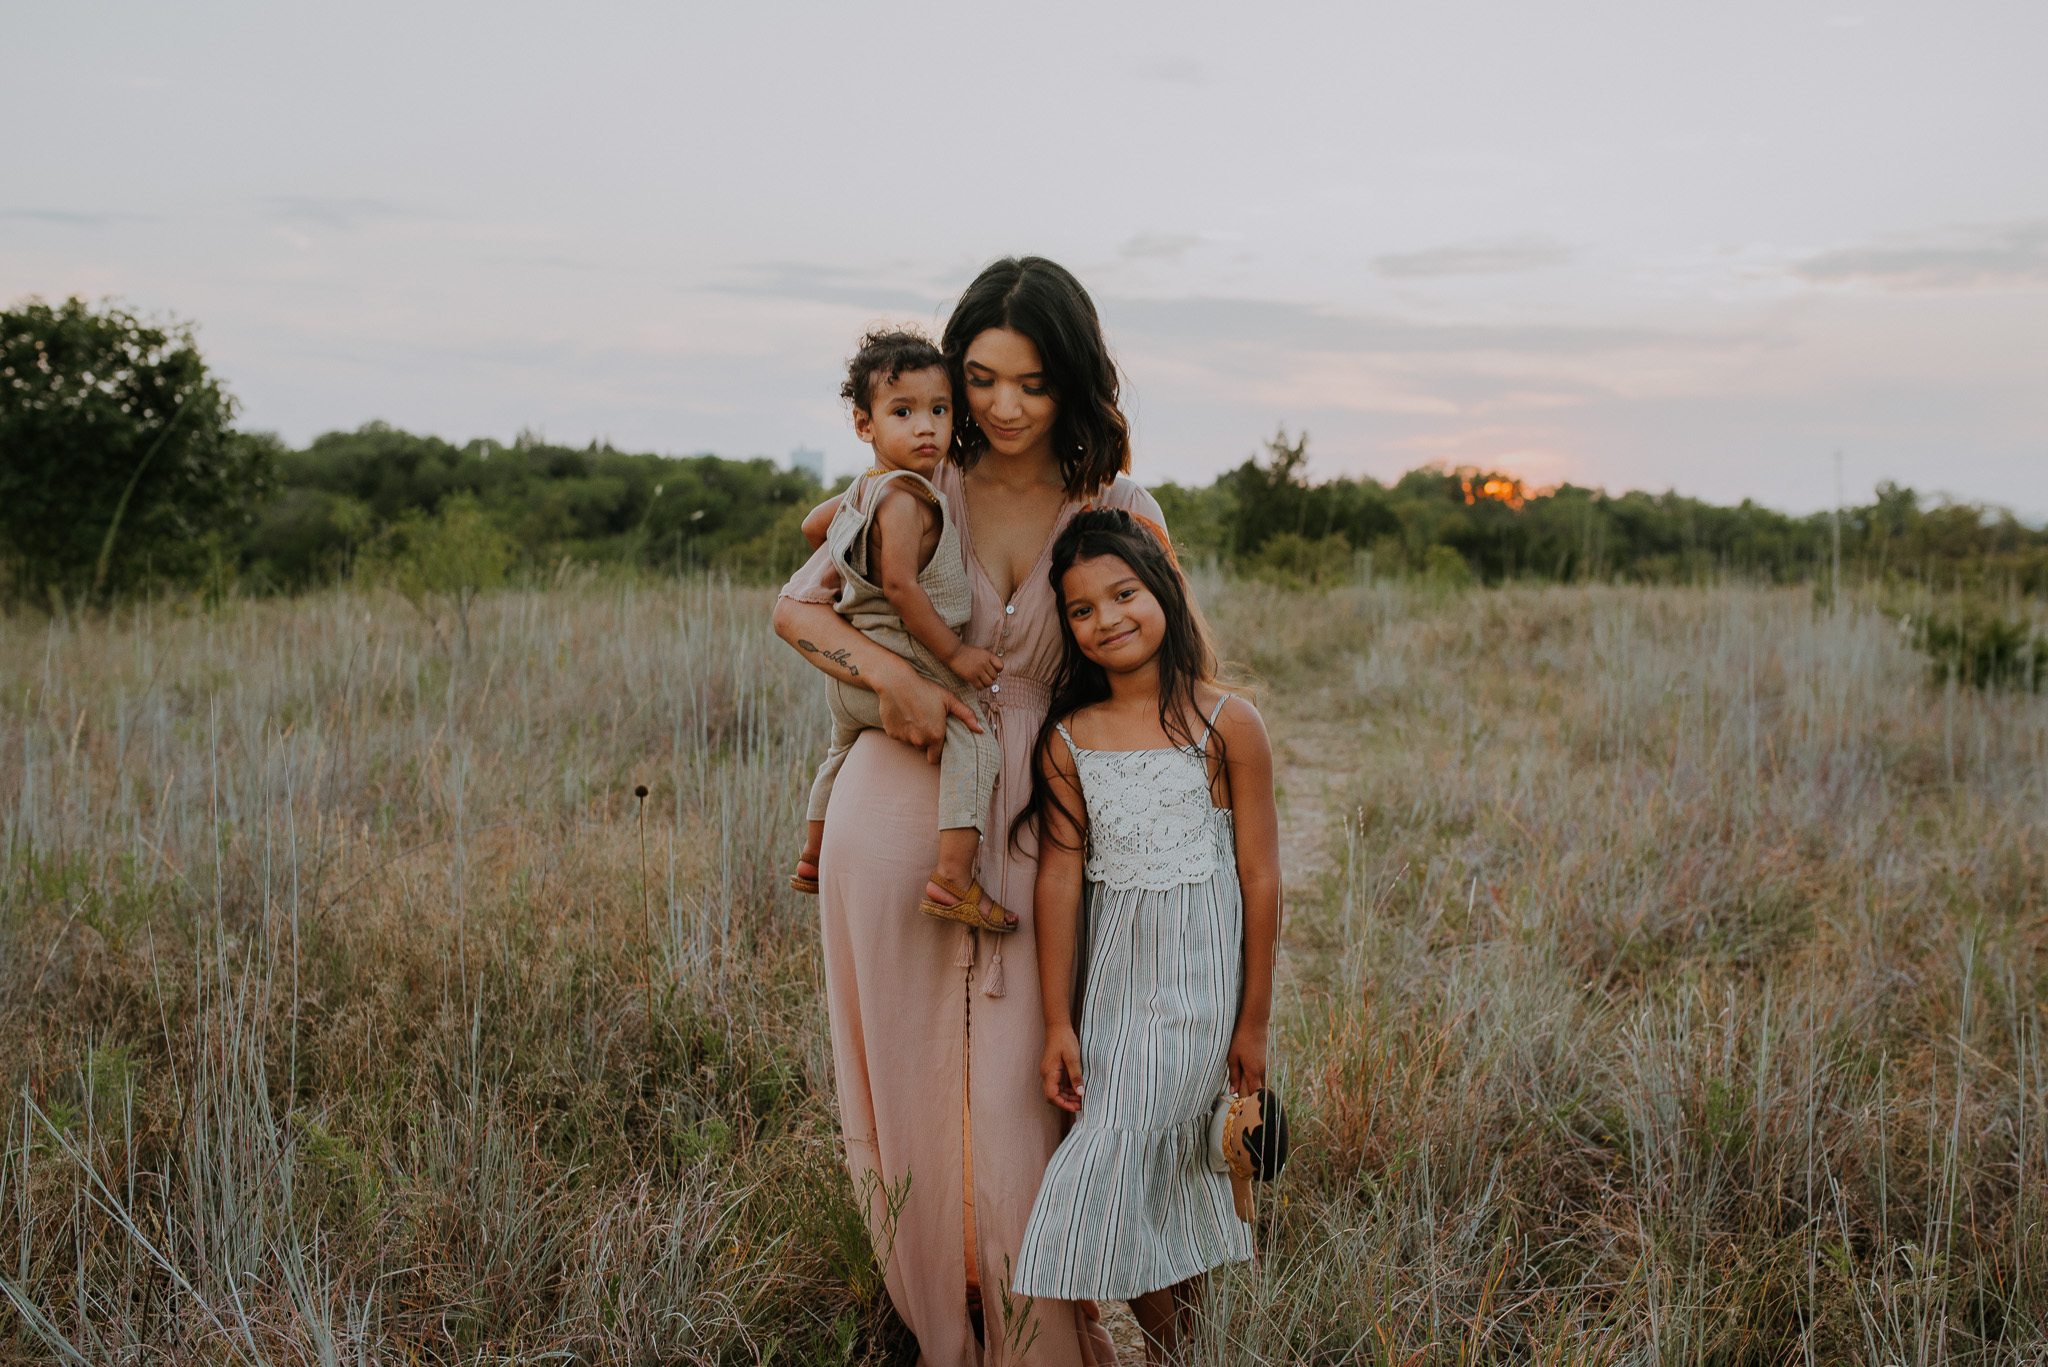 Jessi-marie-photography-dallas-fort-worth-texas-family-photographer-tandy-hills-natural-area-42